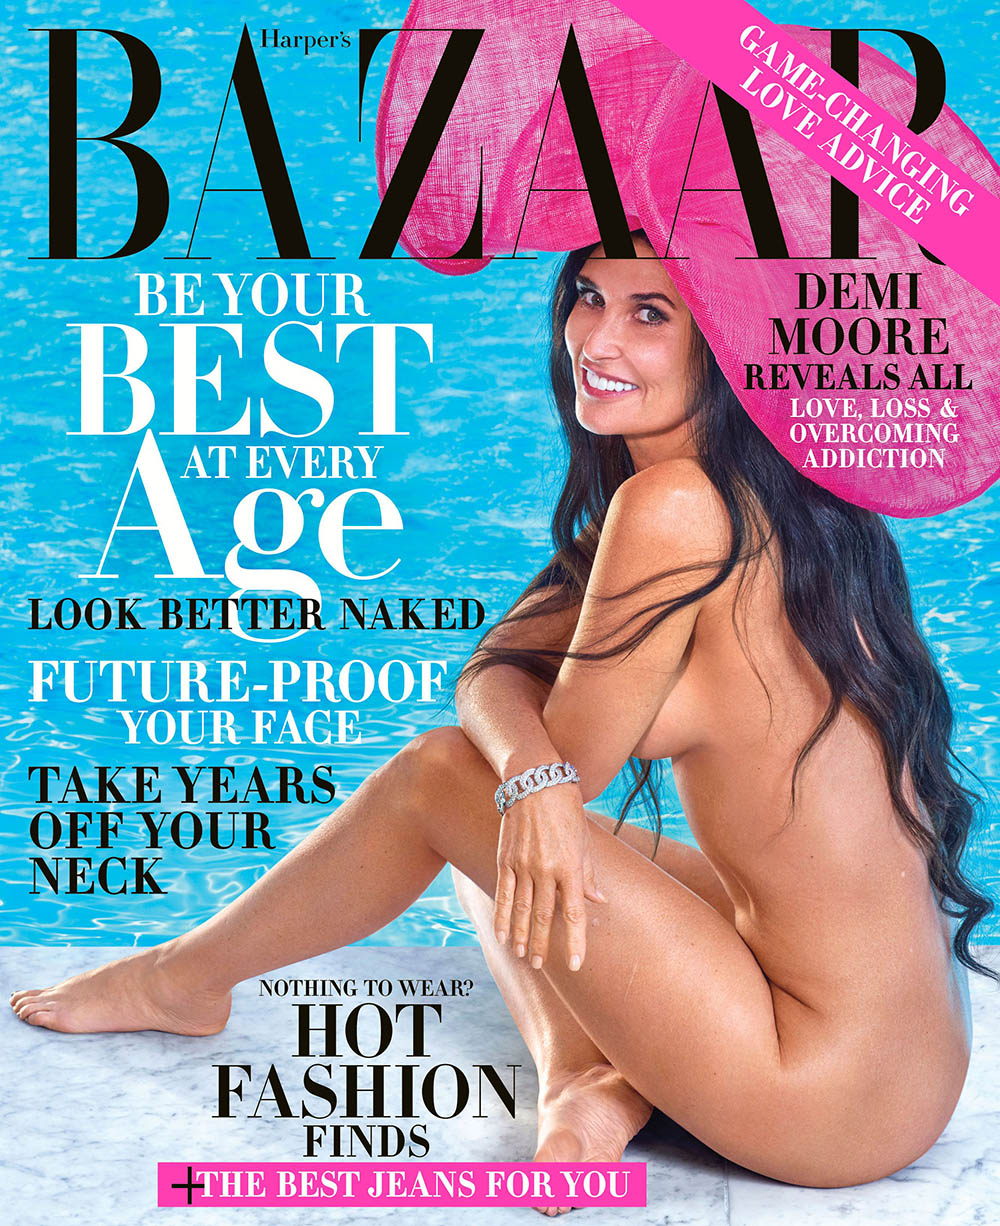 Demi Moore covers Harper's Bazaar US October 2019 by Mariano Vivanco